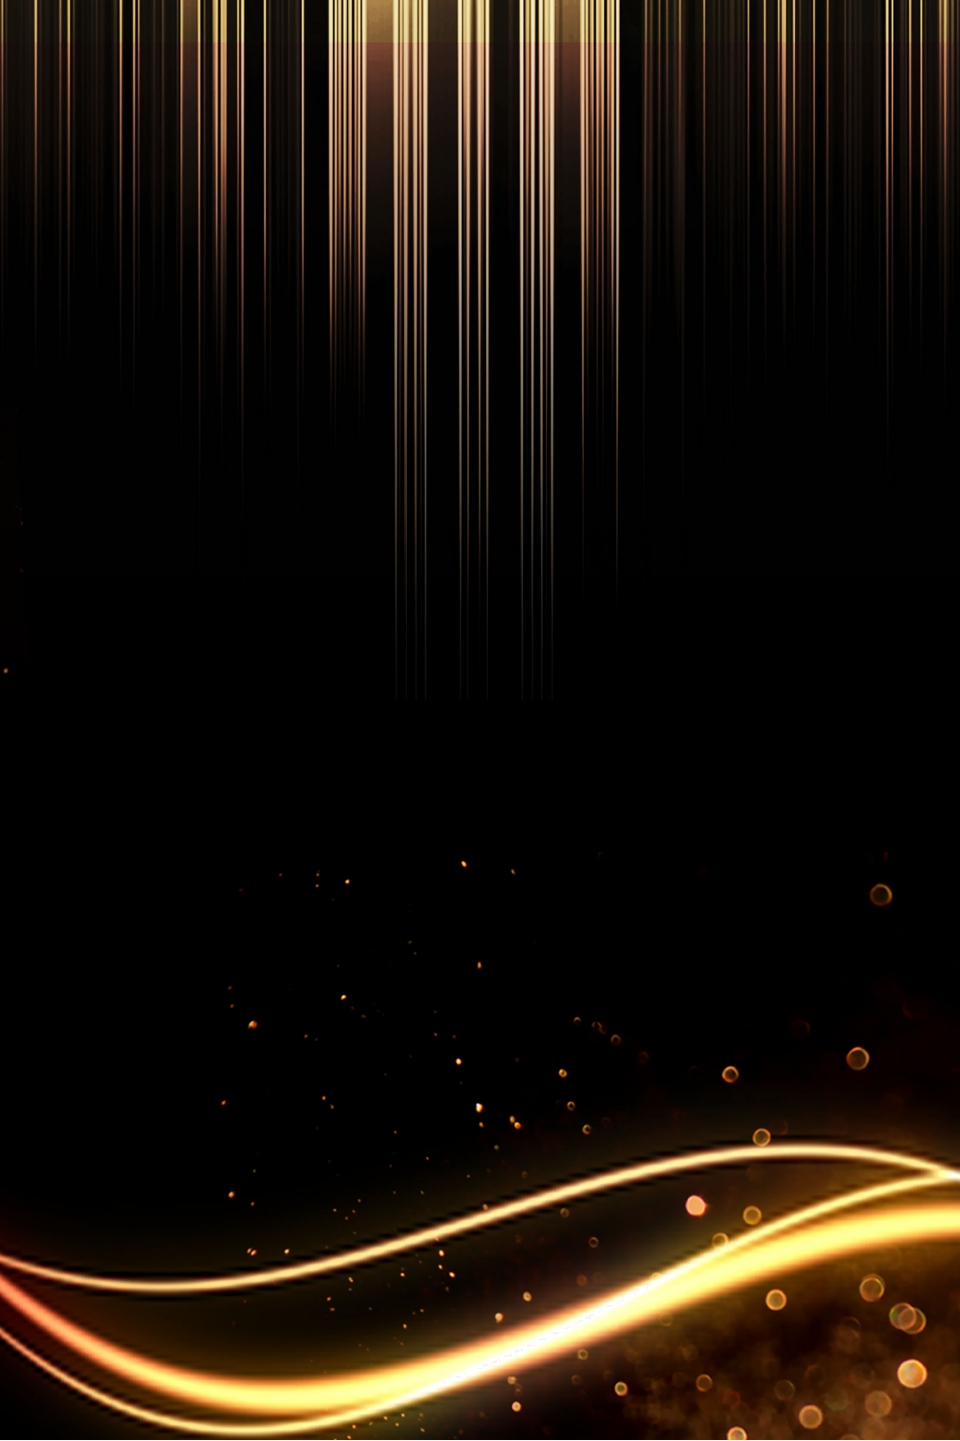 Black Gold Background s Vectors and PSD Files for